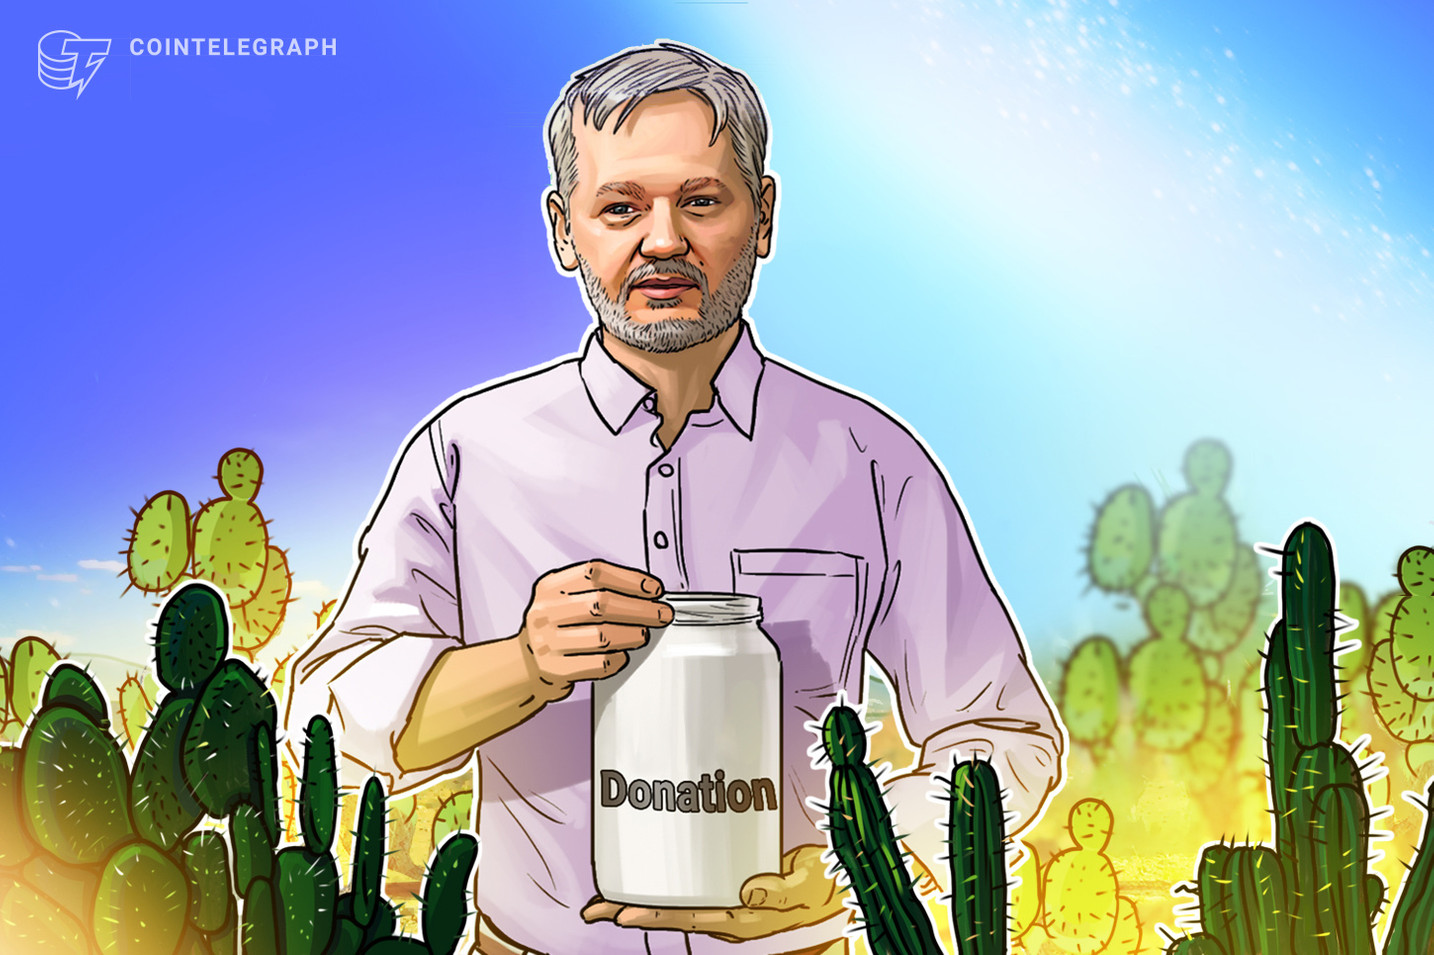 Crypto users donate $400K to Julian Assange defense as Mexico proposes asylum